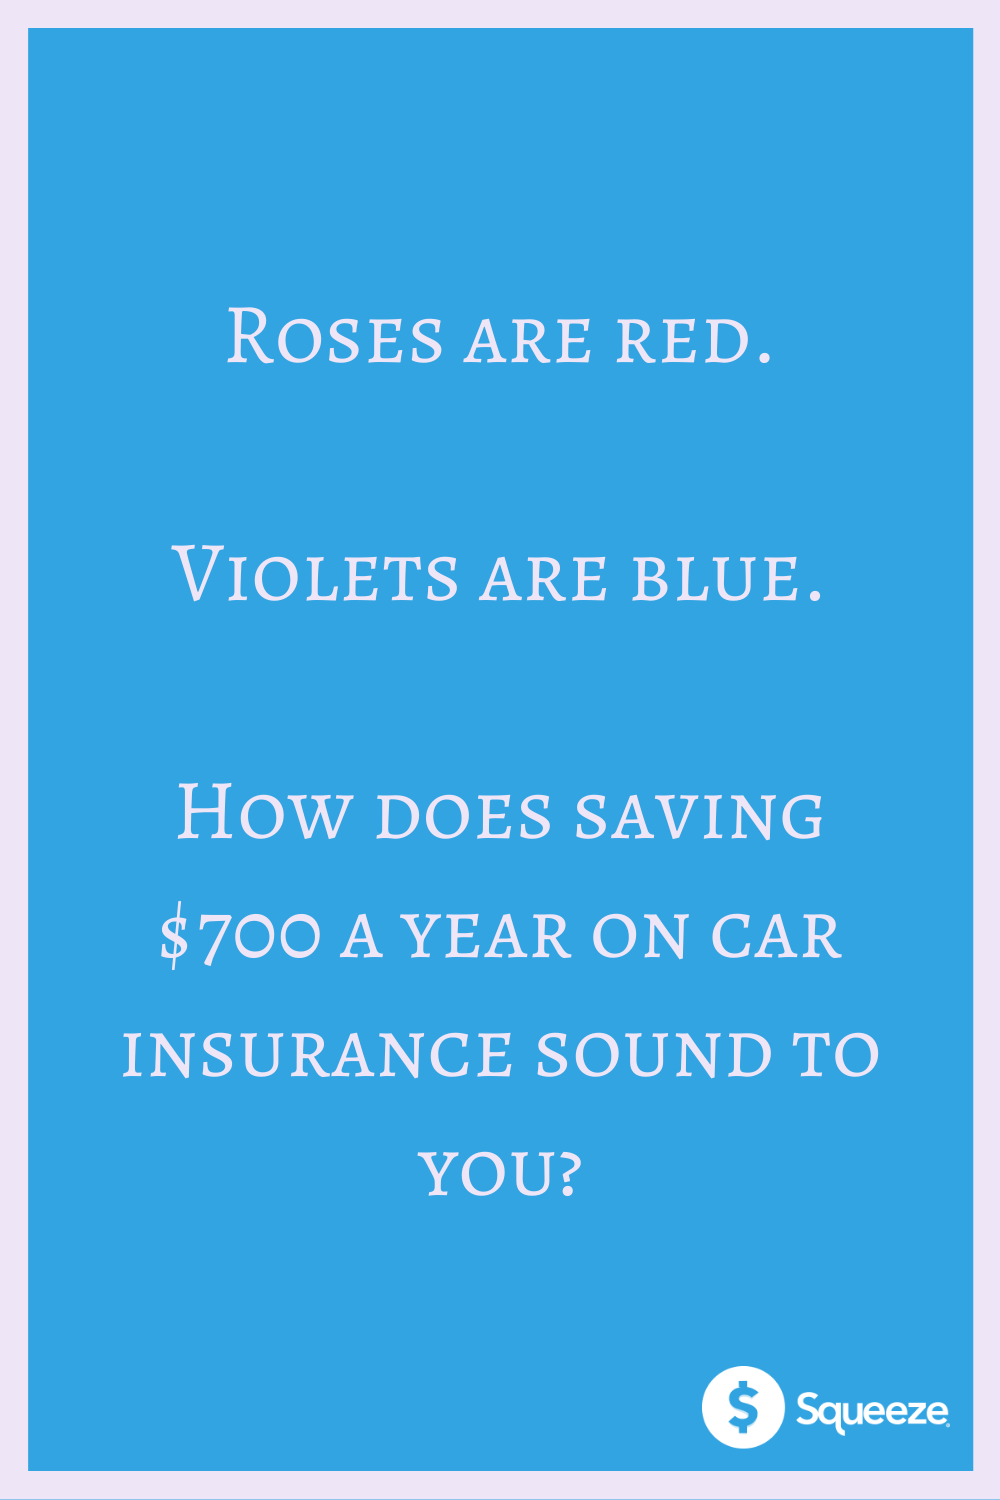 Show yourself some love this year by lowering your car